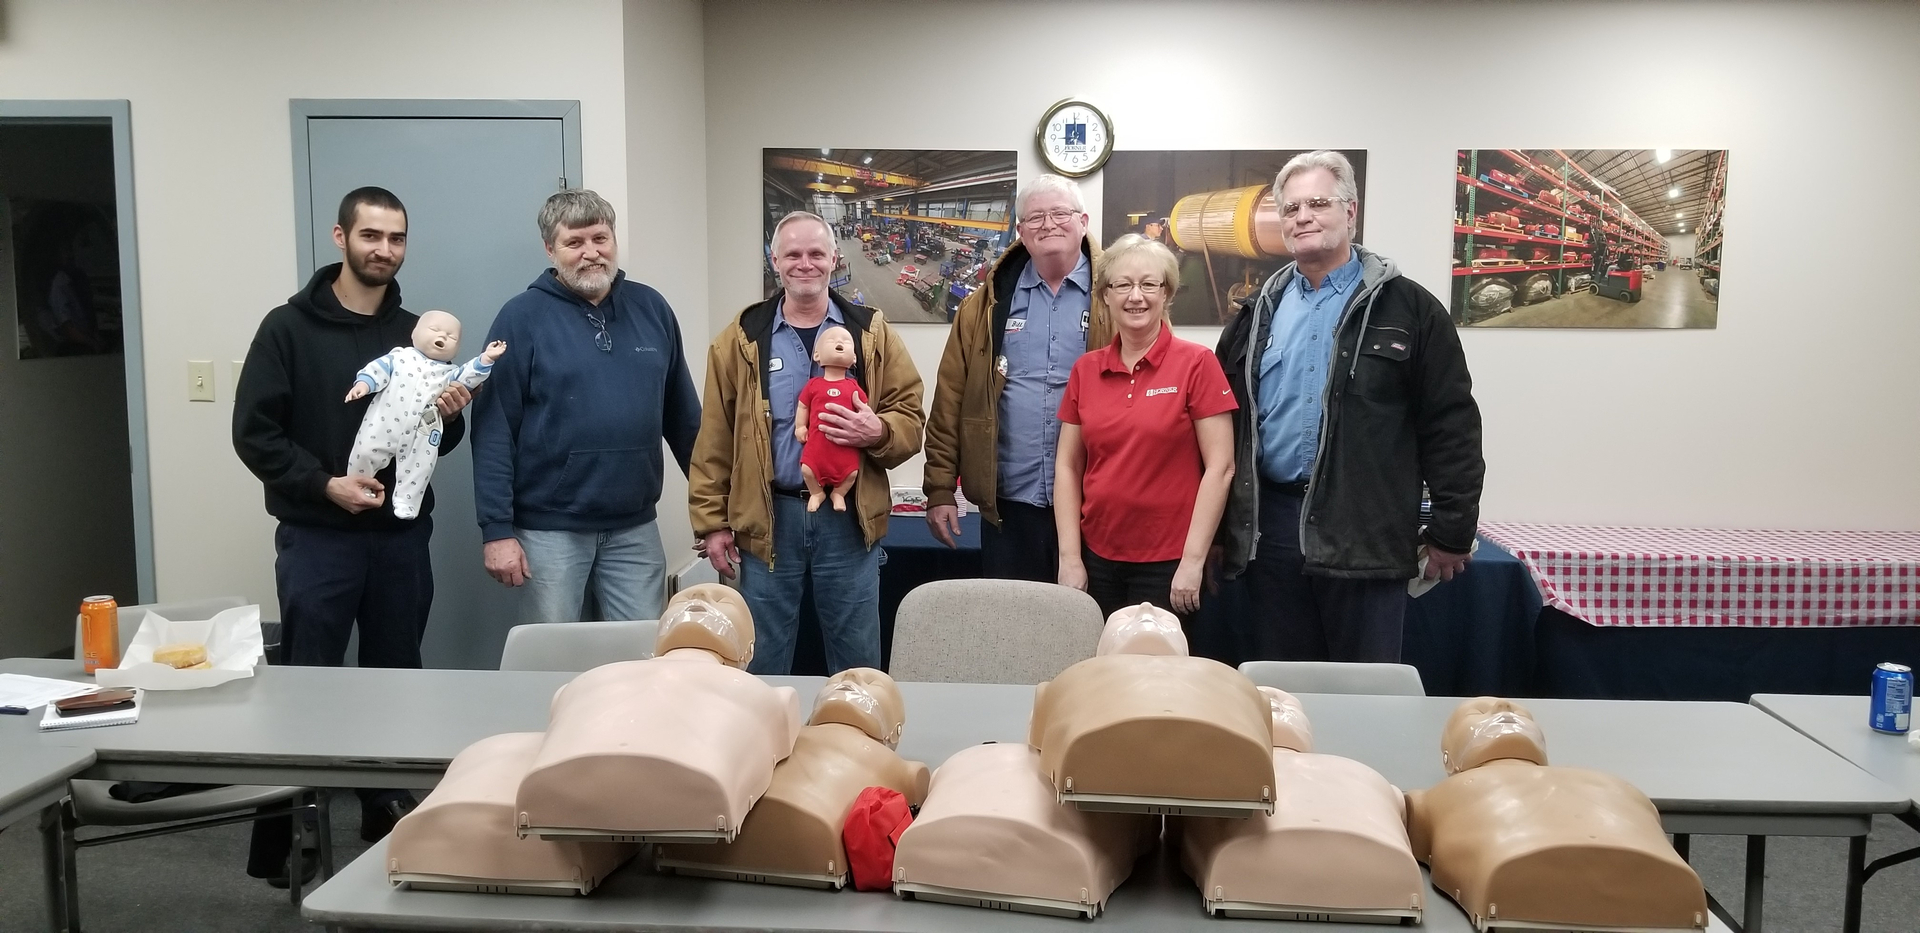 Find a class cpr know that you are taking the course and your plans for possibly joining our team we only accept professional responsible and well organized 1betcityfo Image collections